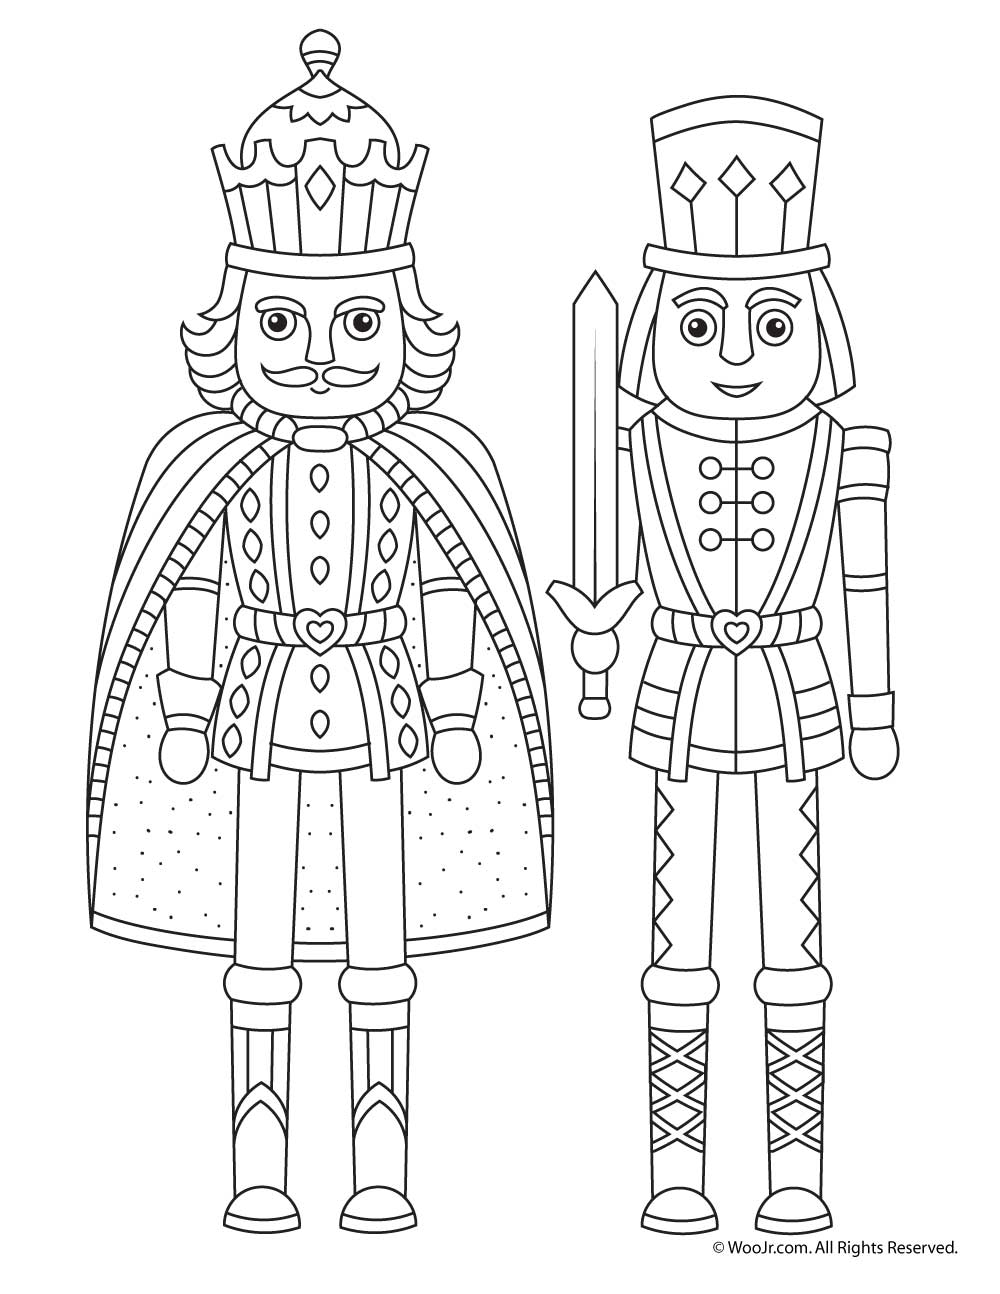 Christmas Coloring Pages Nutcracker With Page Woo Jr Kids Activities